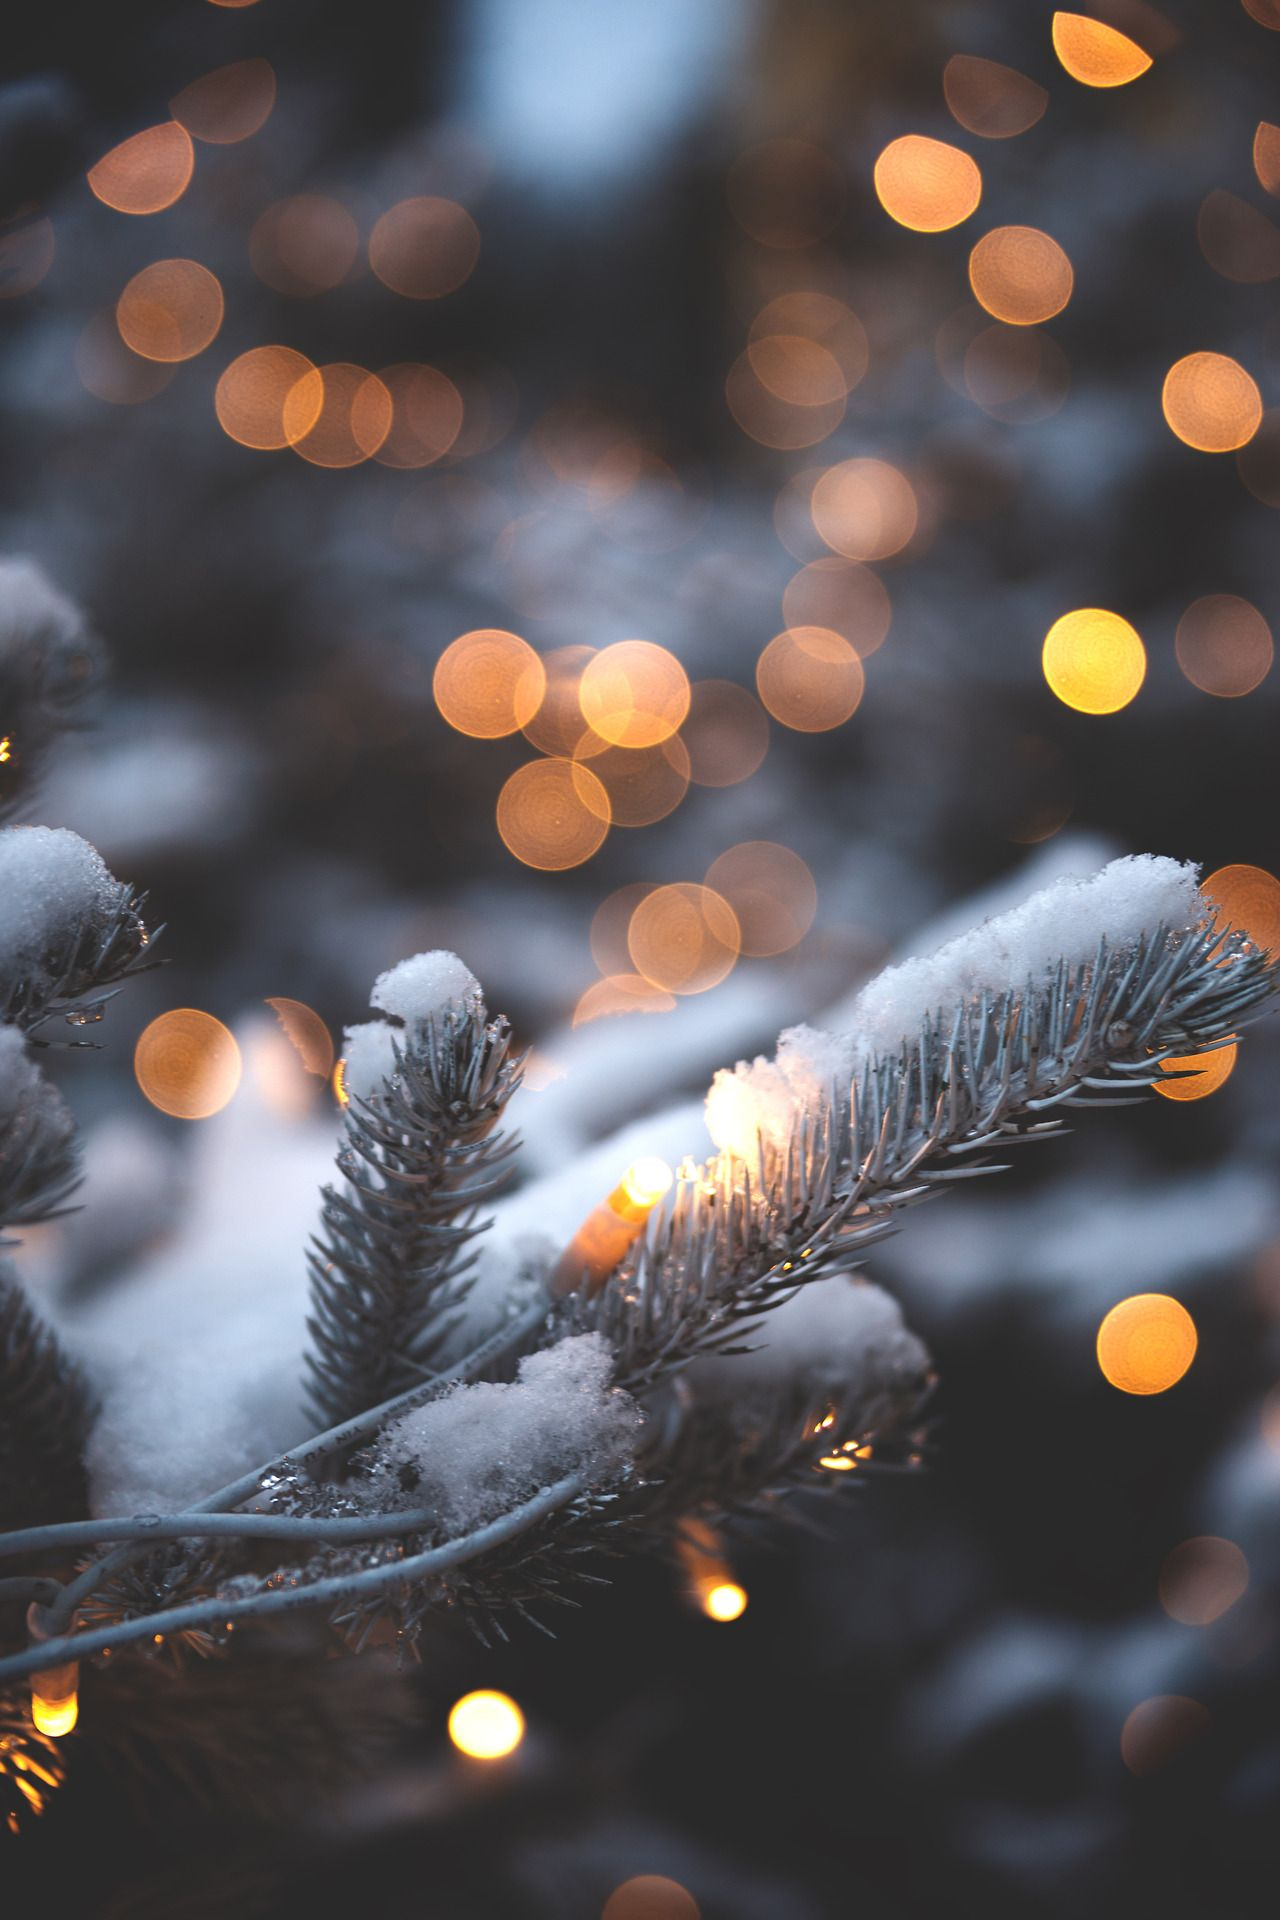 Aesthetic Holiday Sorry Im Gonna Be Pinning Lots And Lots And Lots Of Christmas